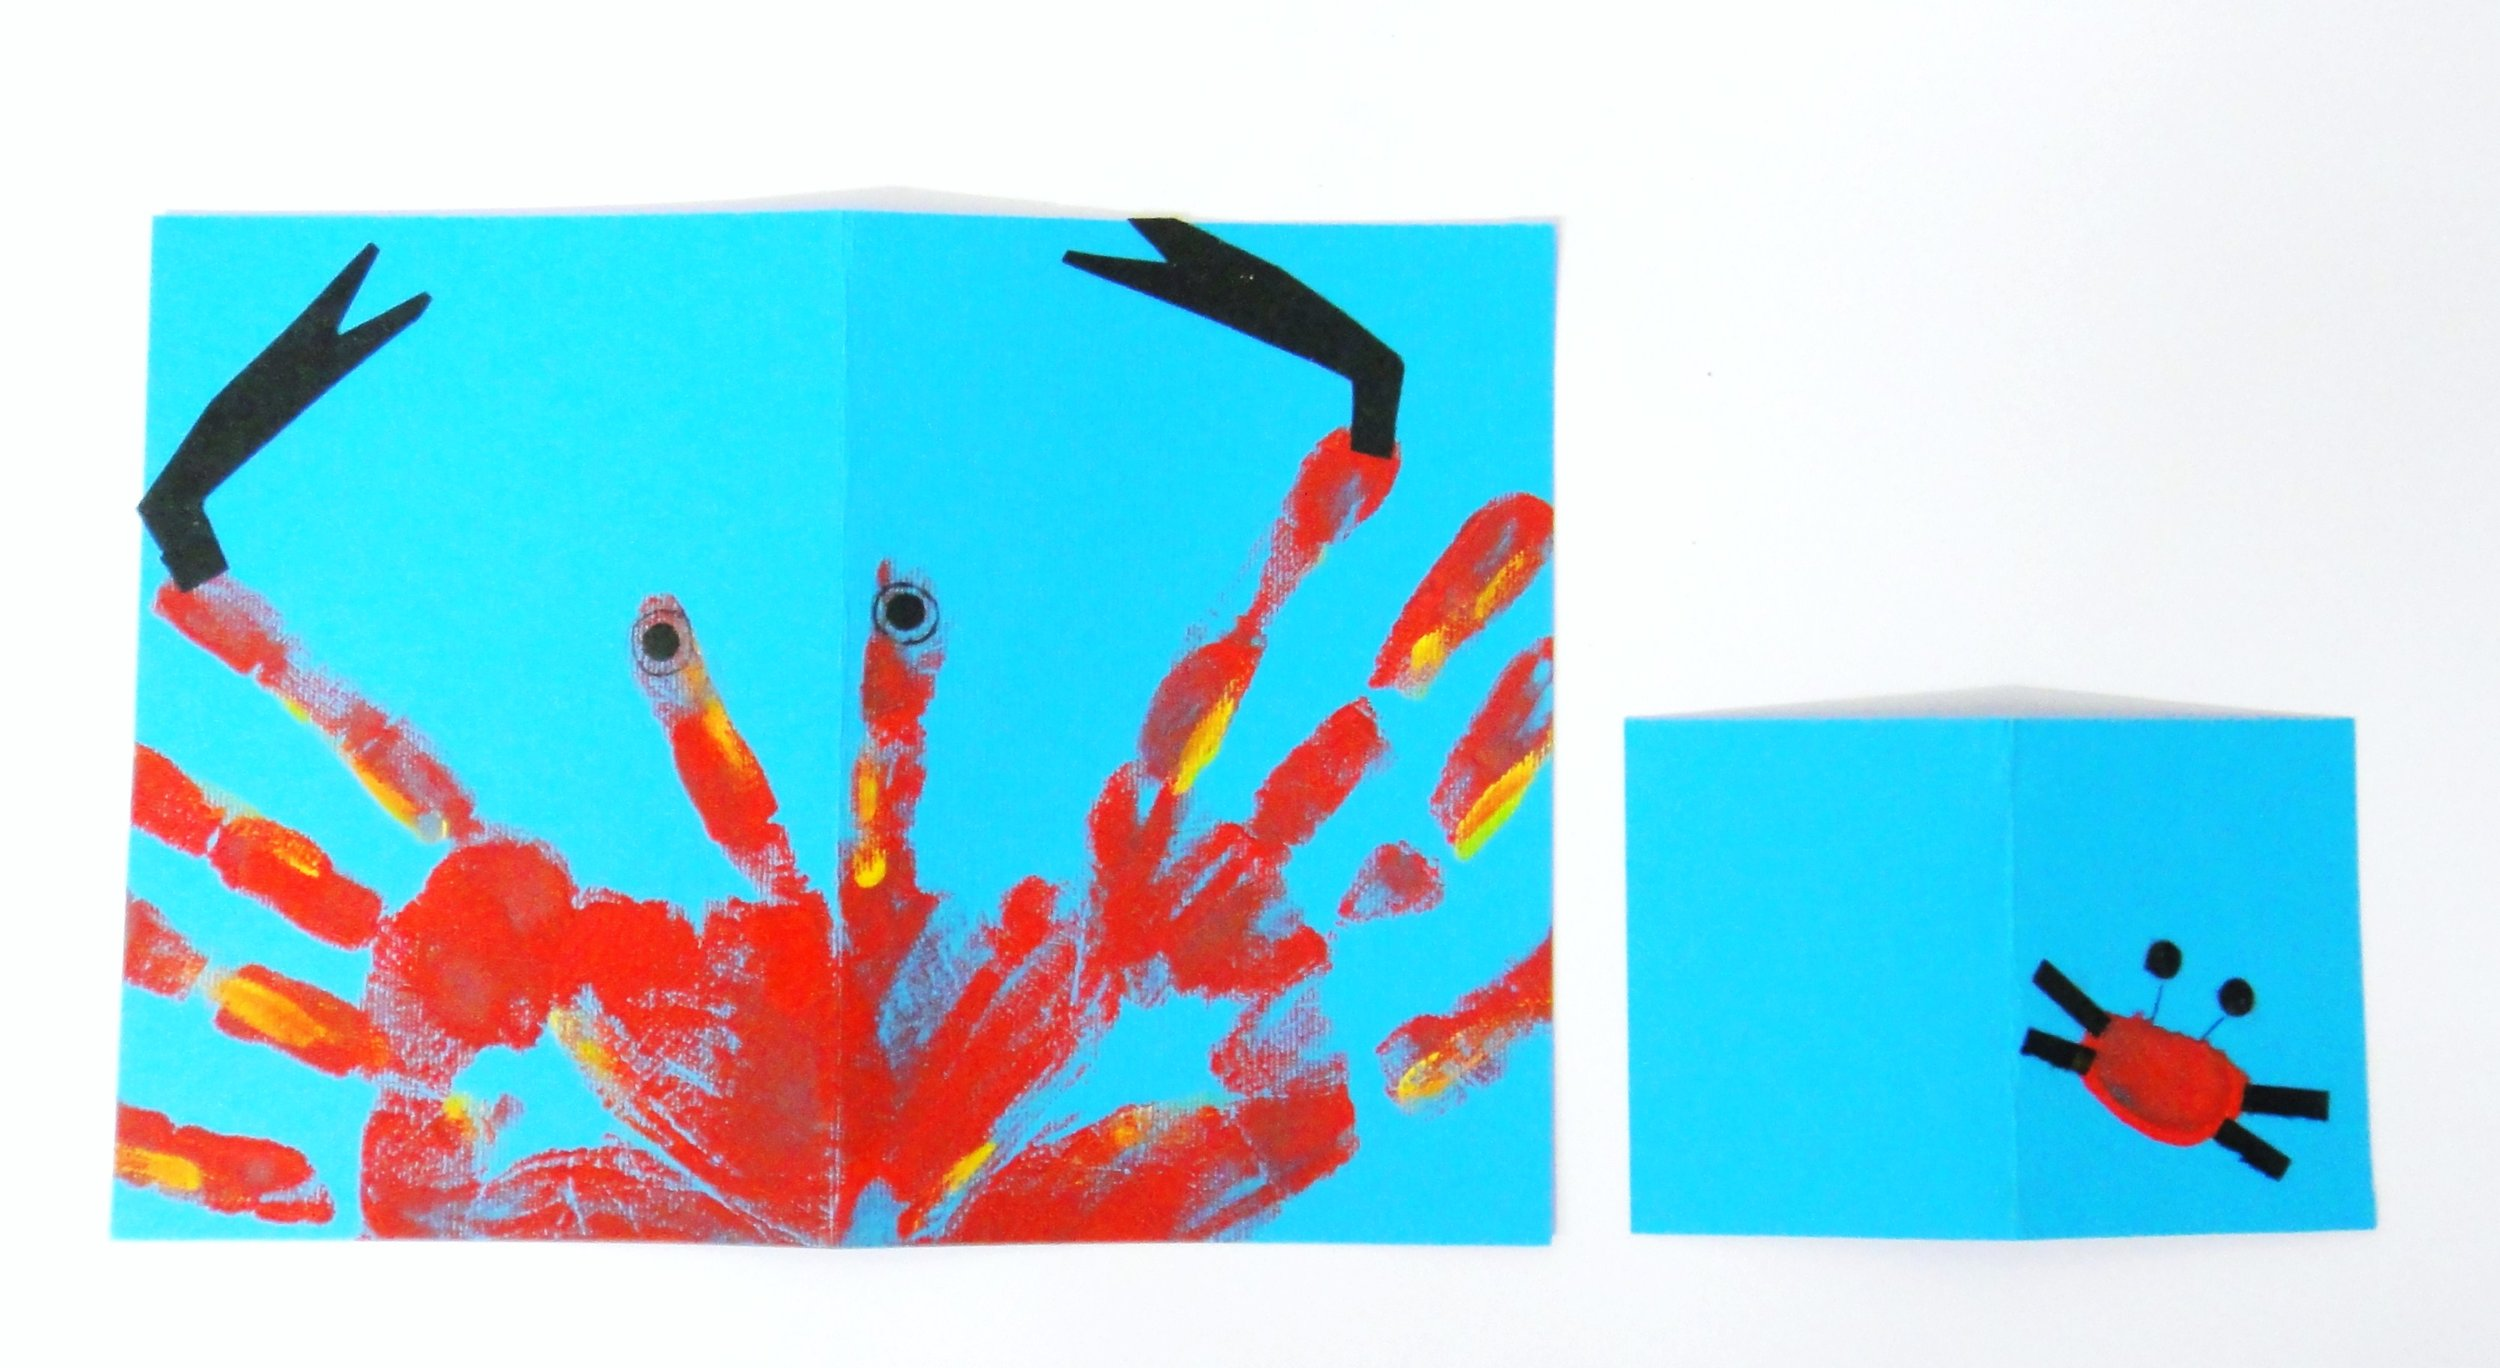 Learnt about aquatic life and printed vibrant crab-imprinted birthday invitation-cards and thumb-printed thank you cards